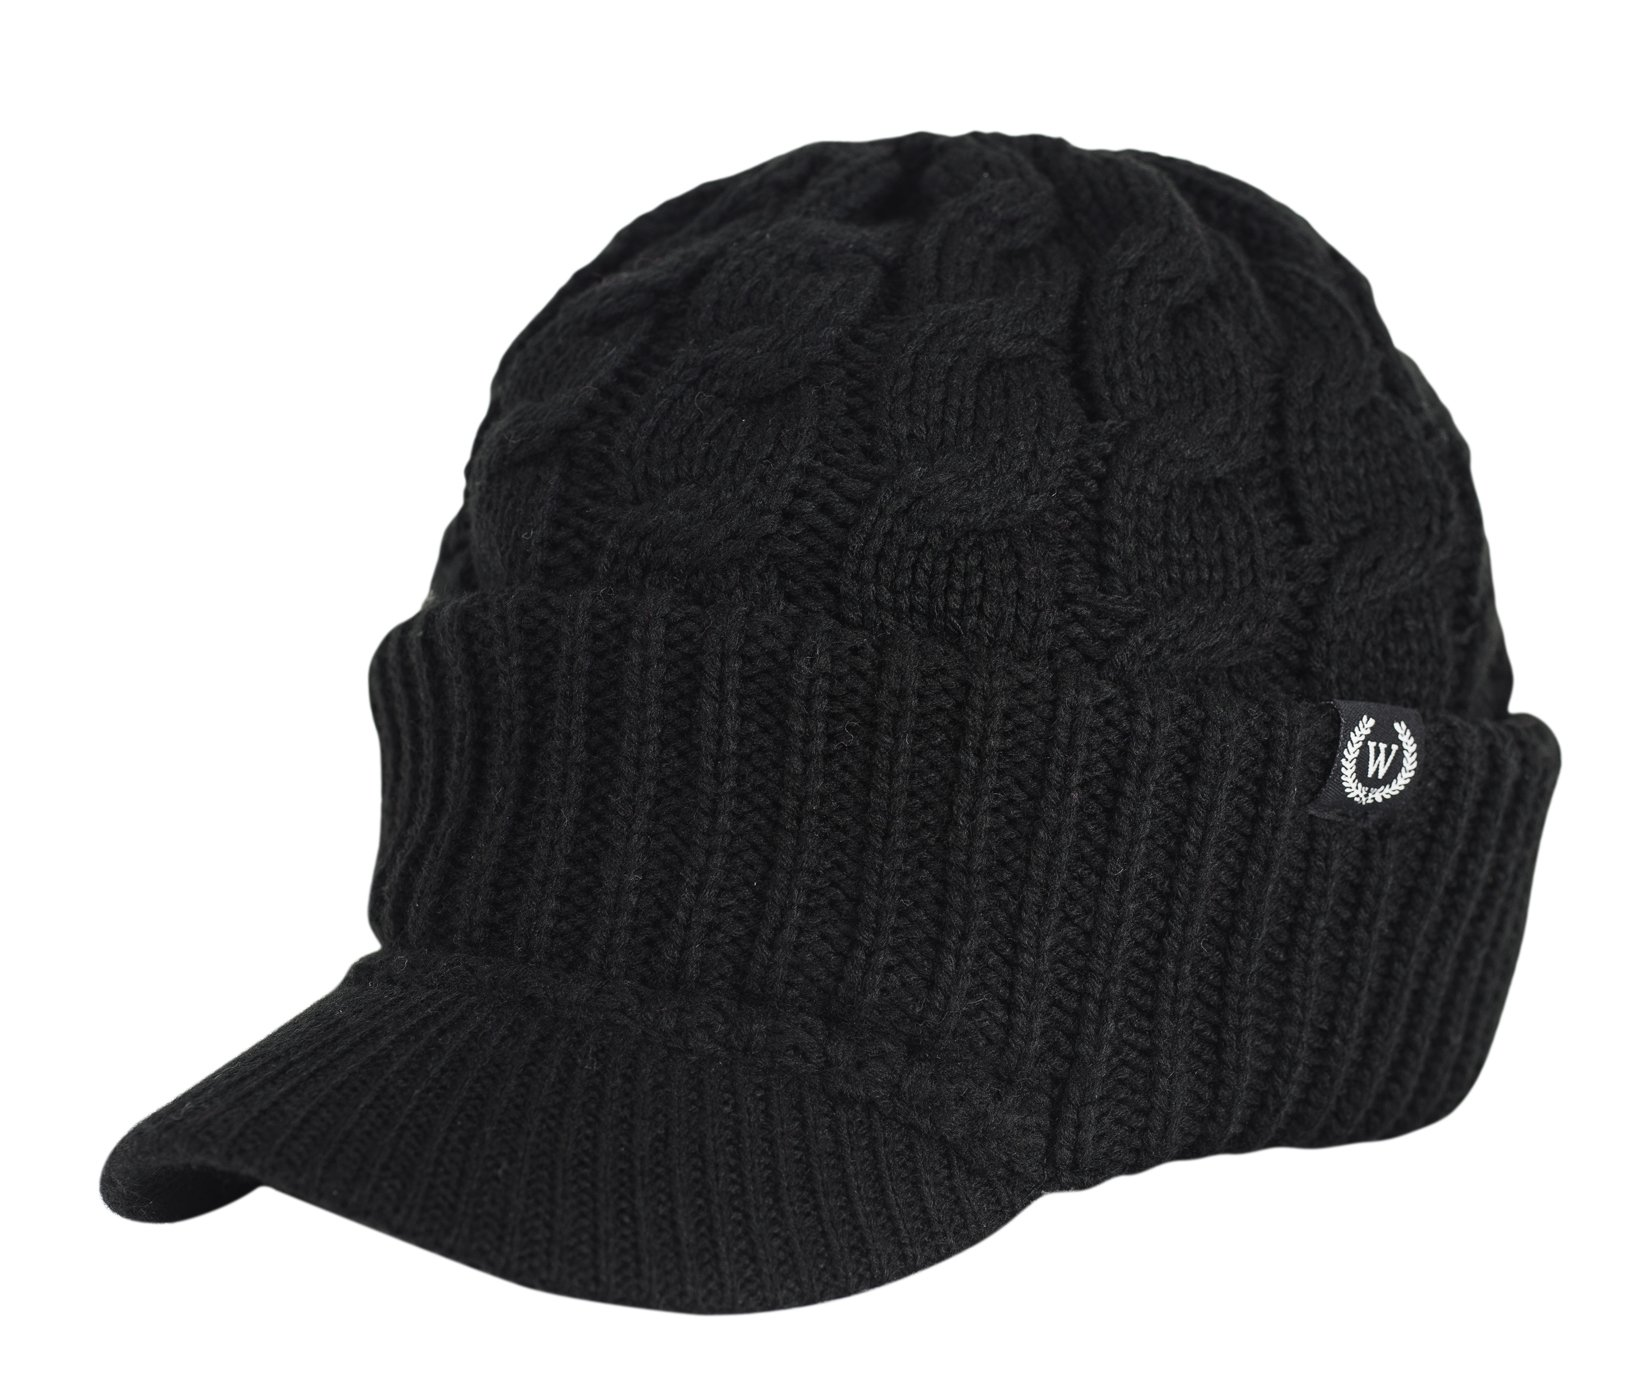 Newsboy Cable Knitted Hat with Visor Bill Winter Warm Hat for Women ... d68f17dbe1a